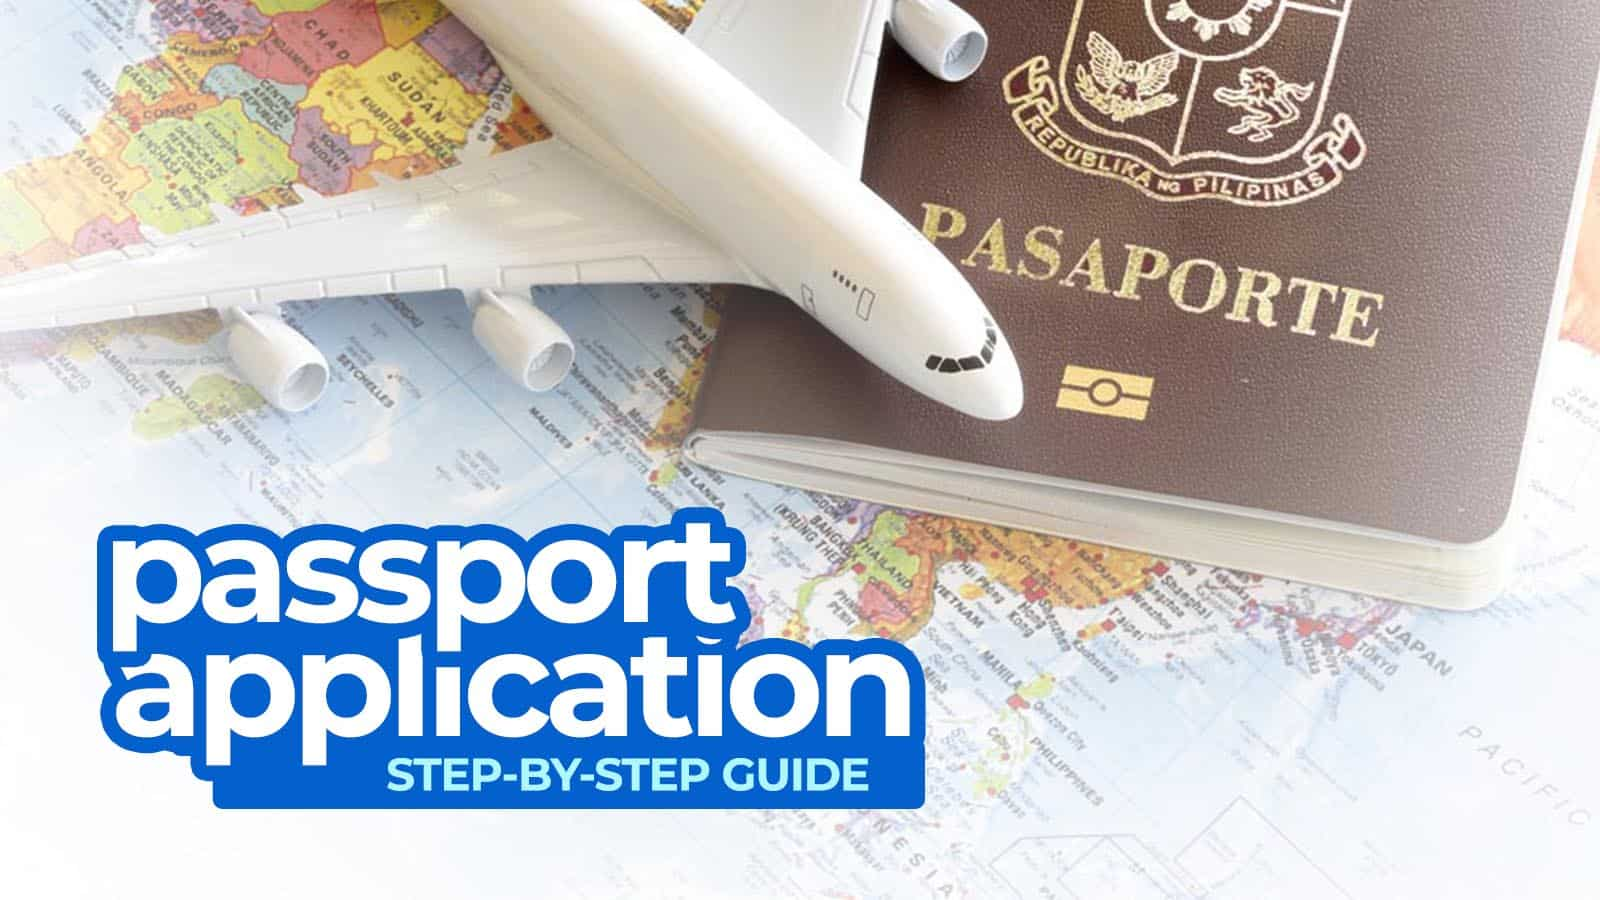 NEW PASSPORT APPLICATION: Requirements & Appointment Tips 2018